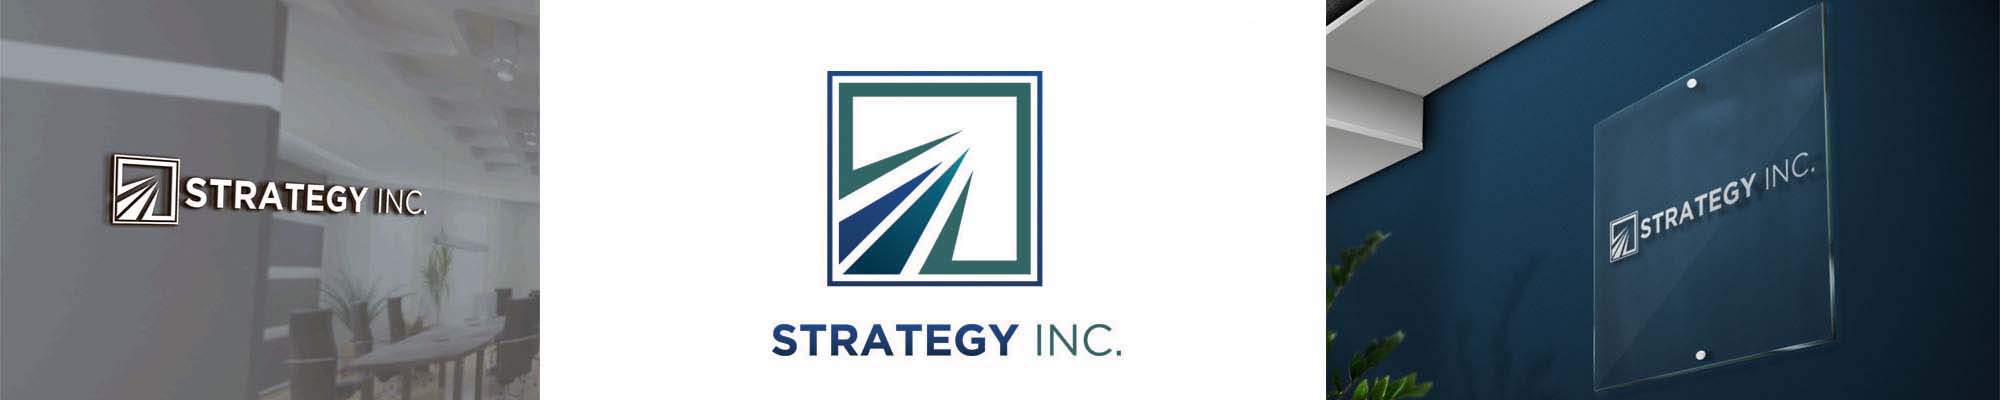 strategy-inc-leadership-representation